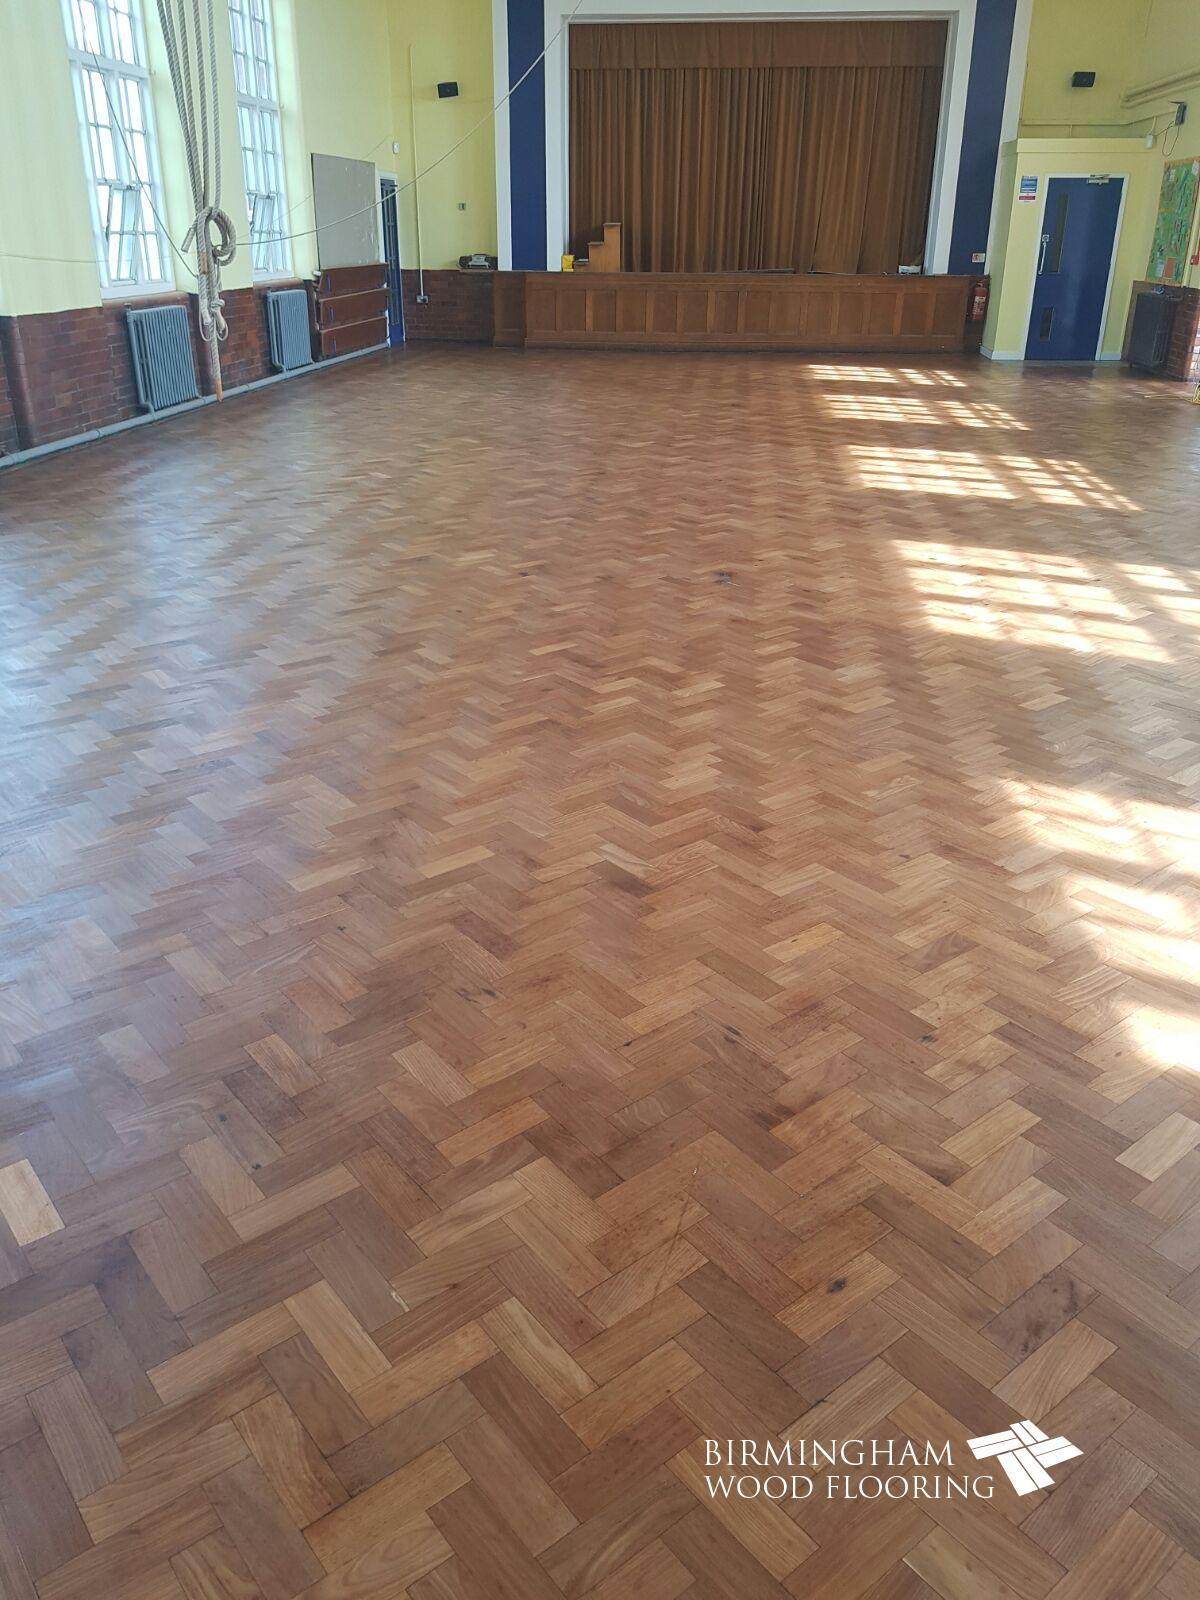 New-Whittington-School-1